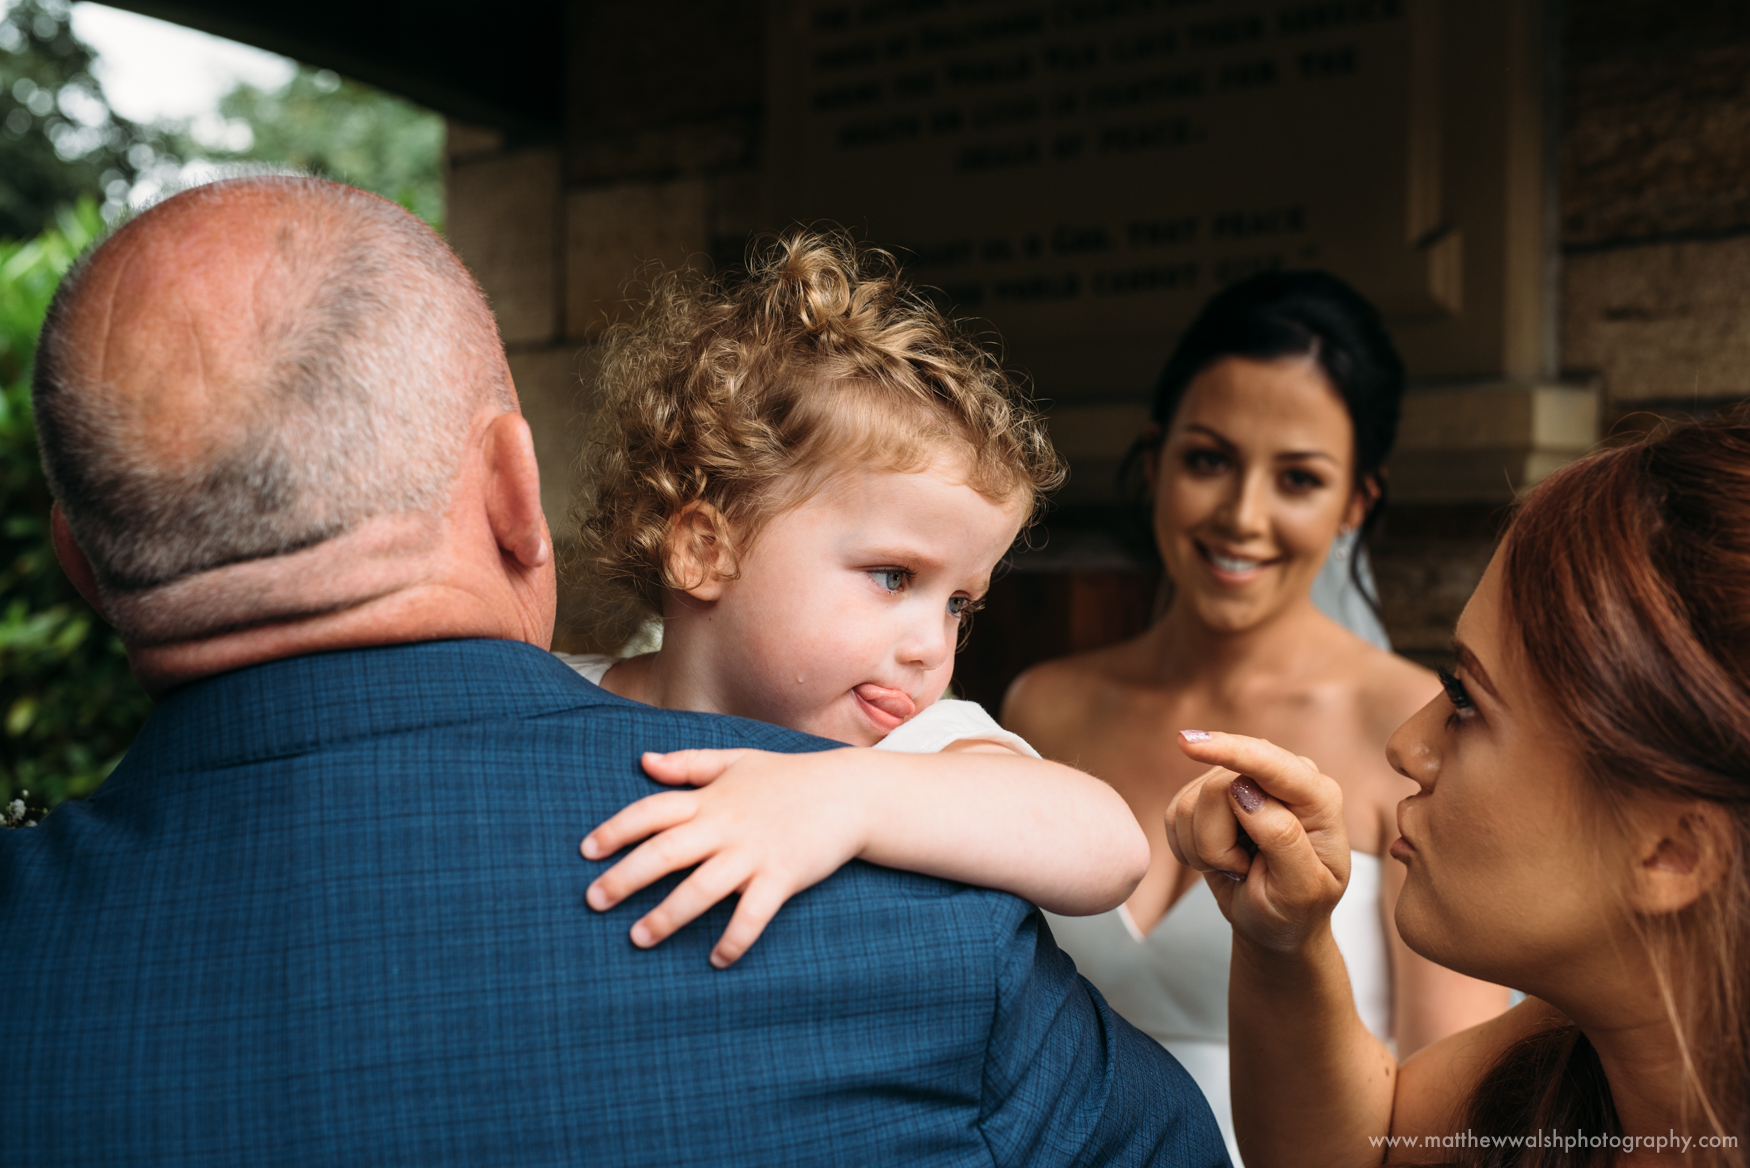 The flower girl has a little cry but her grandfather gives her a hug